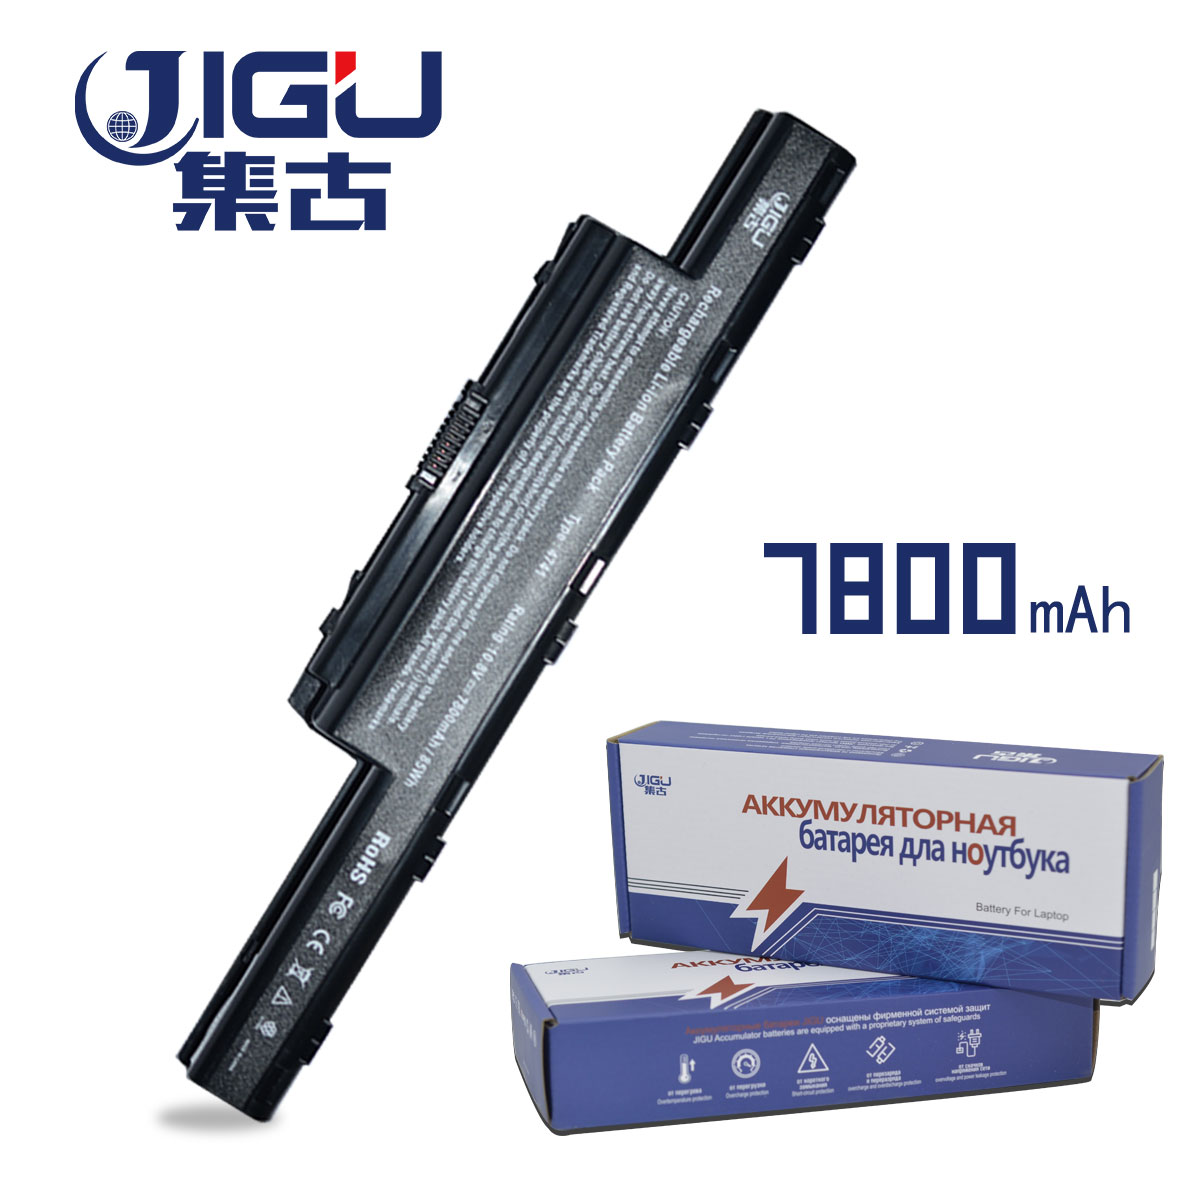 JIGU 7750g NEW Laptop Battery For Acer Aspire V3 V3-471G V3-551G V3-571G V3-771G E1 E1-421 E1-431 E1-471 E1-531 E1-571 Series weidefusiyuan laptop sata converter adapter hdd connector socket for acer e1 421 e1 431 e1 431g e1 471g ec 471g v3 471g